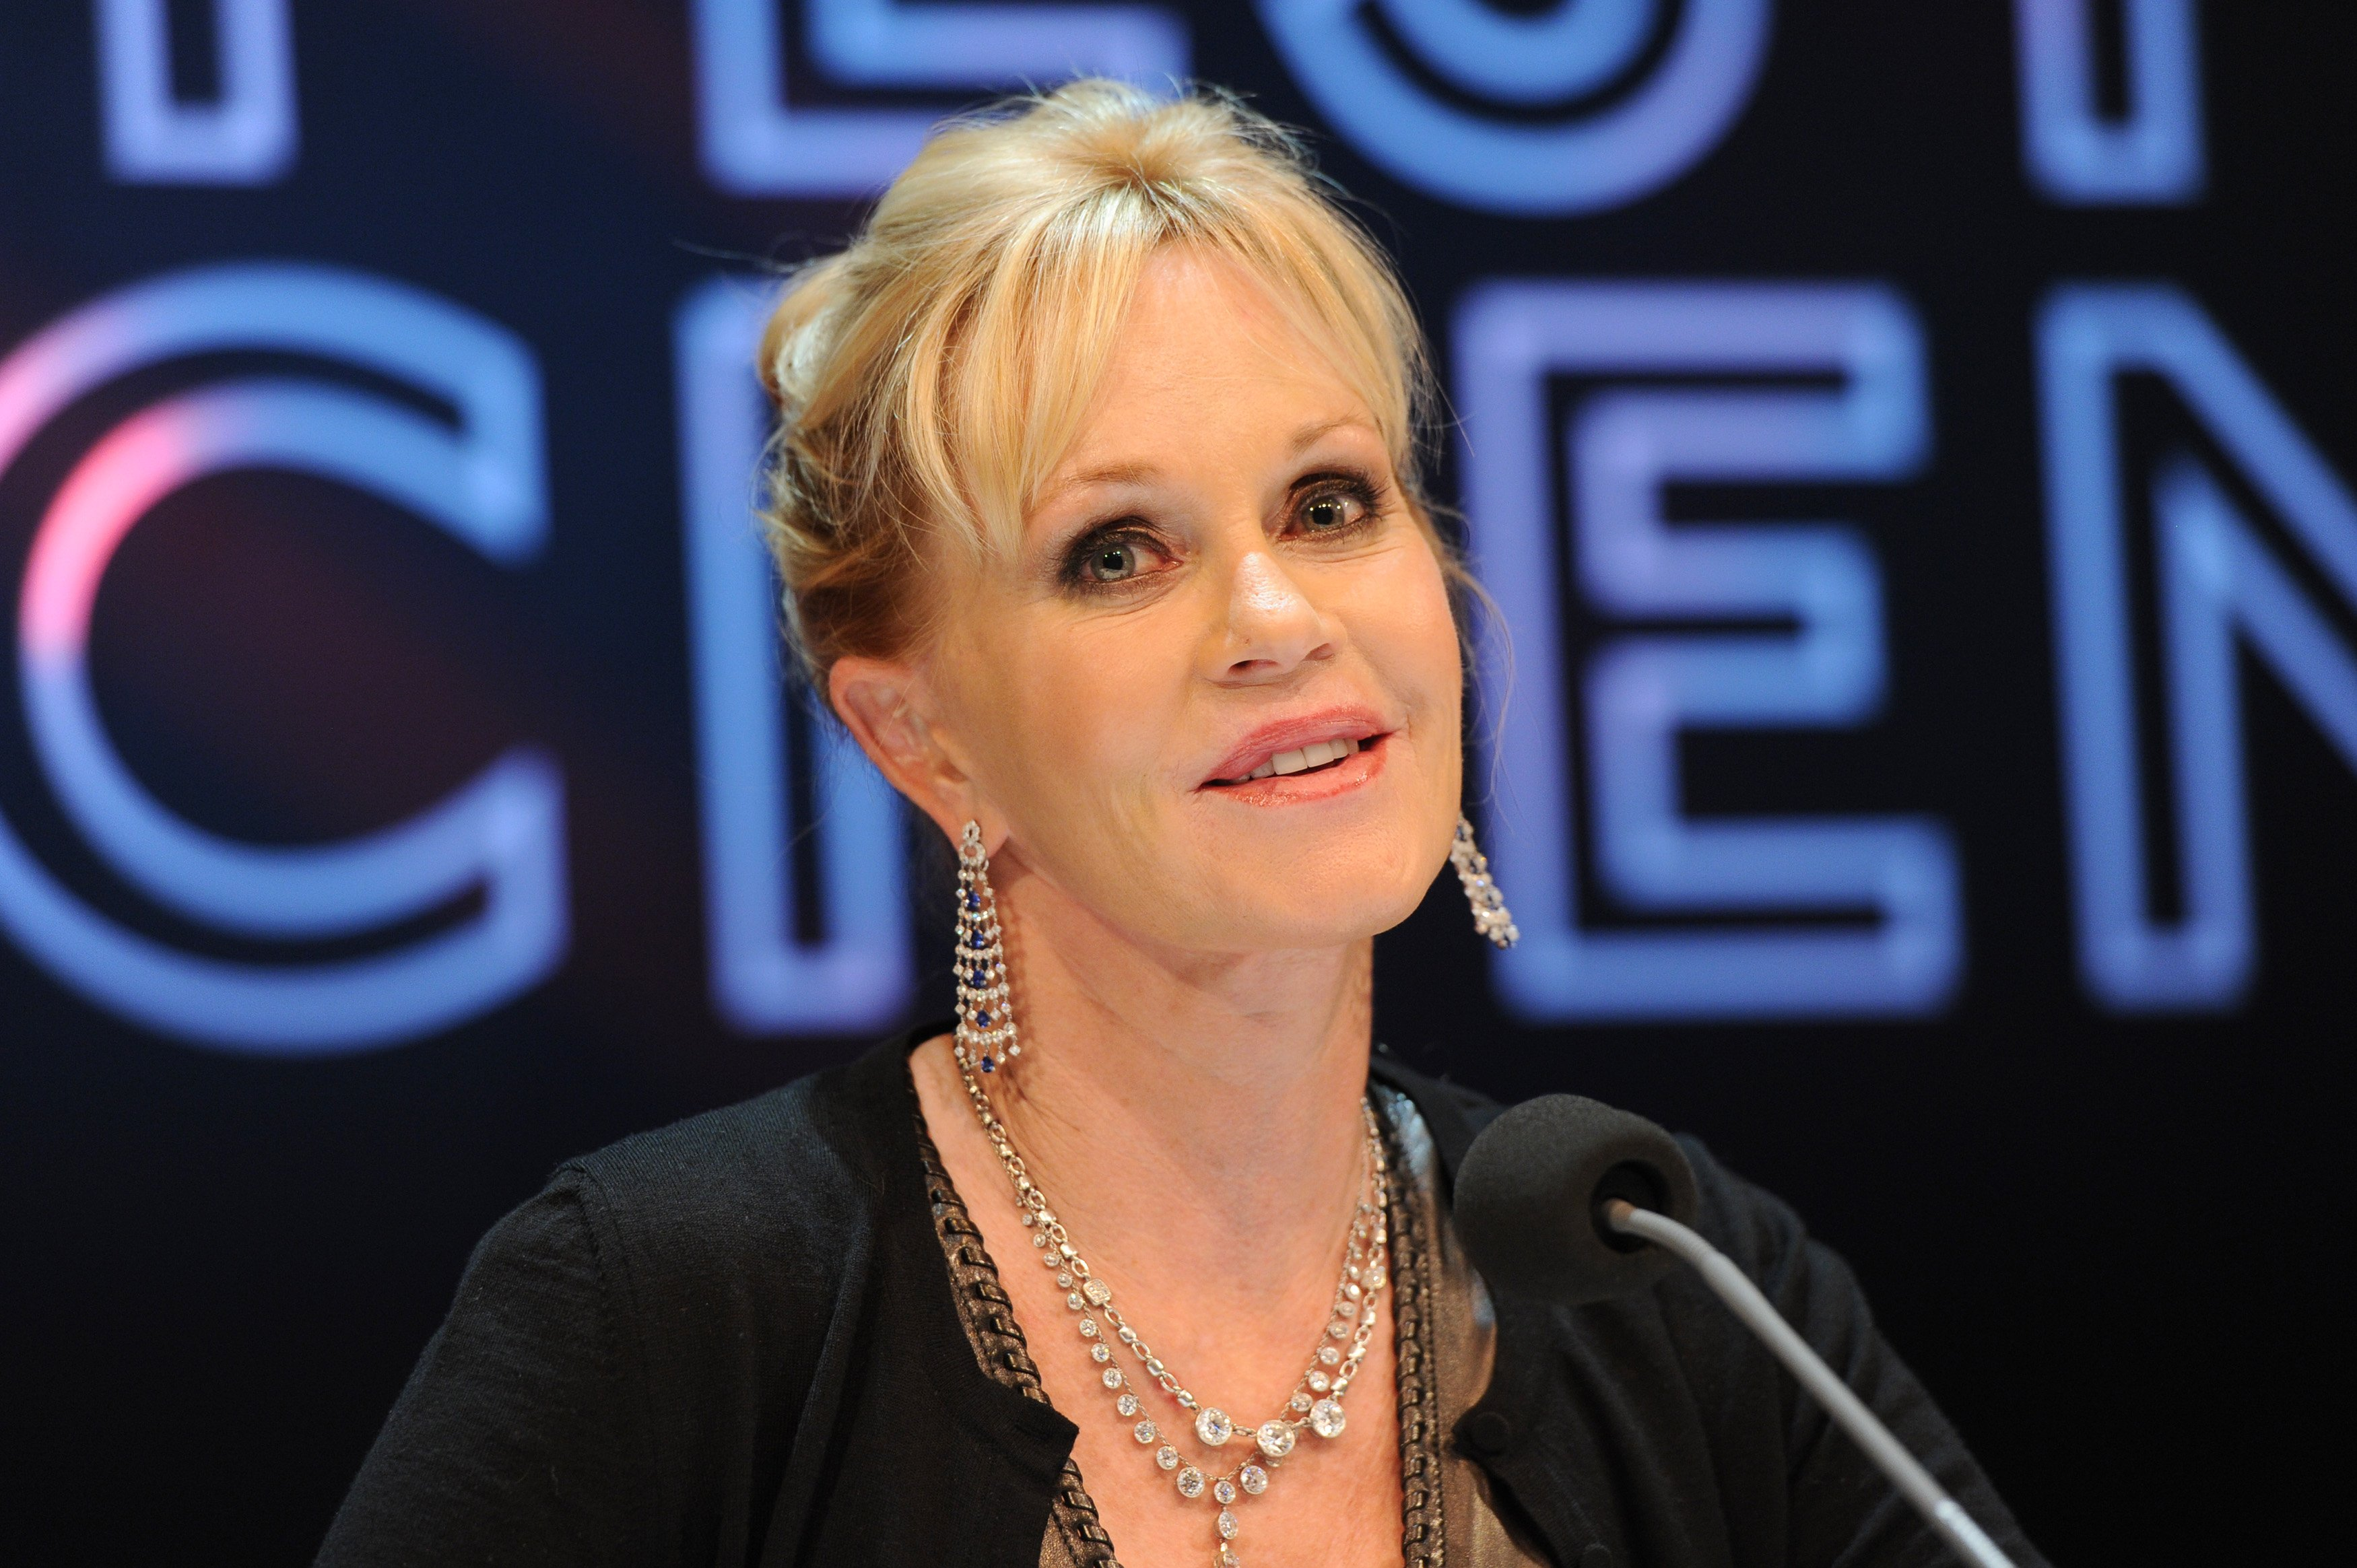 Melanie Griffith participates in a panel talk at The Black Box during the Munich film festival on July 3, 2012 in Munich, Germany. | Source: Getty Images